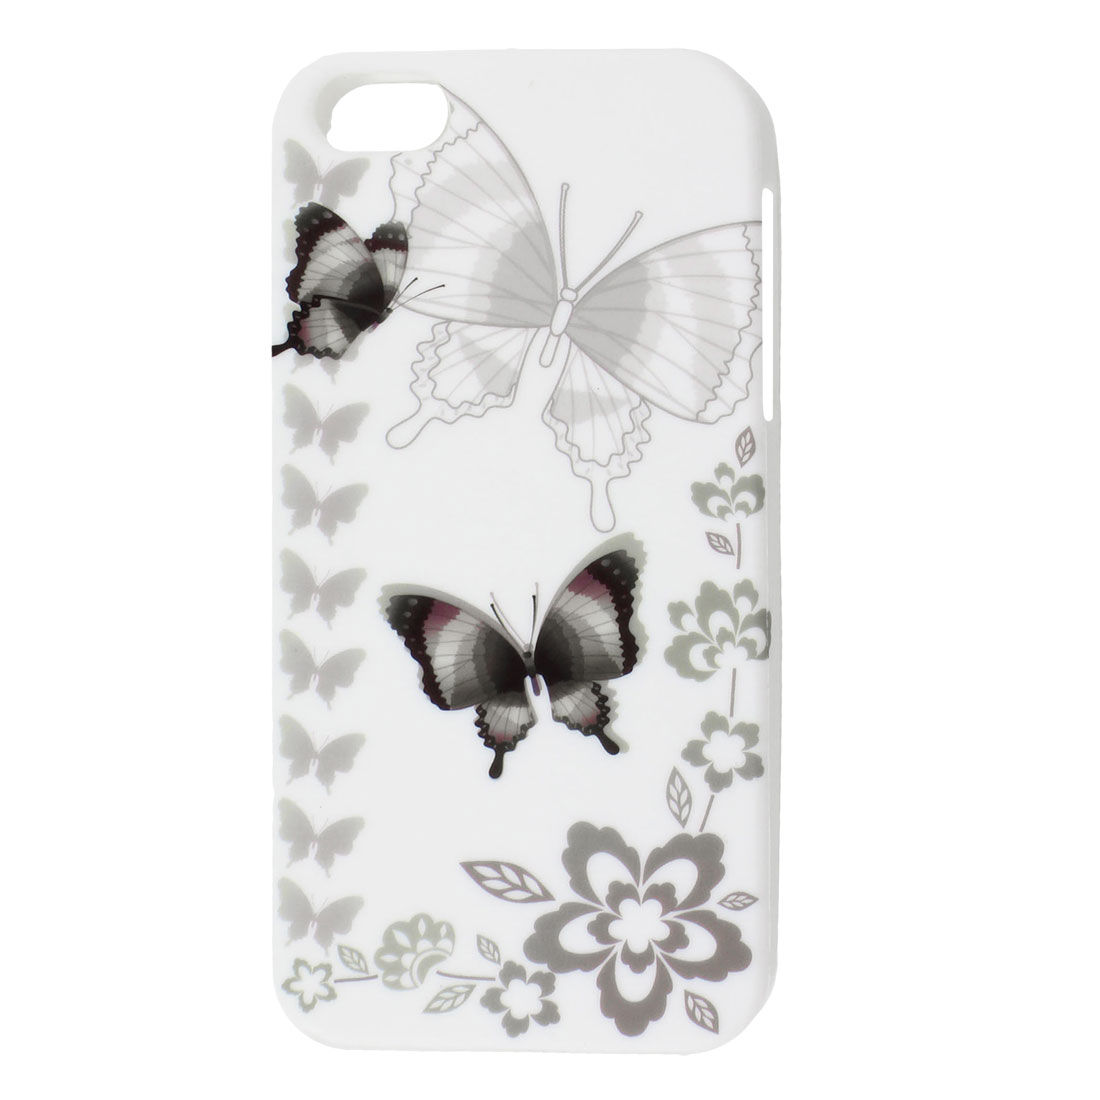 White Gray Butterfly Flower TPU Soft Case Cover for Apple iPhone 5 5G